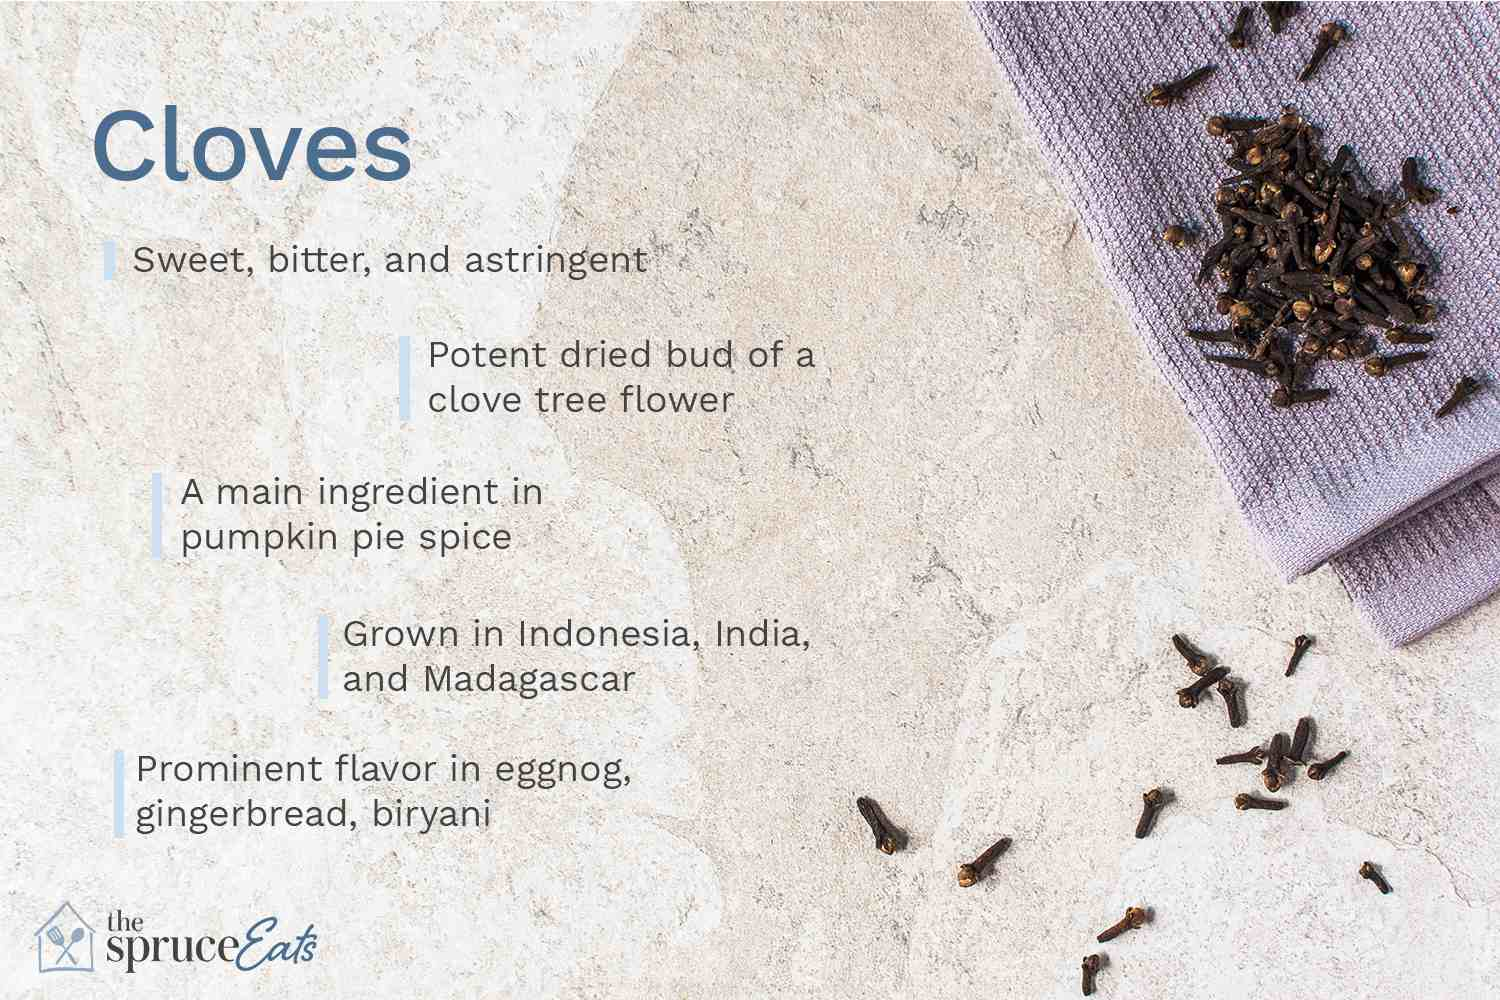 Cloves informational graphic